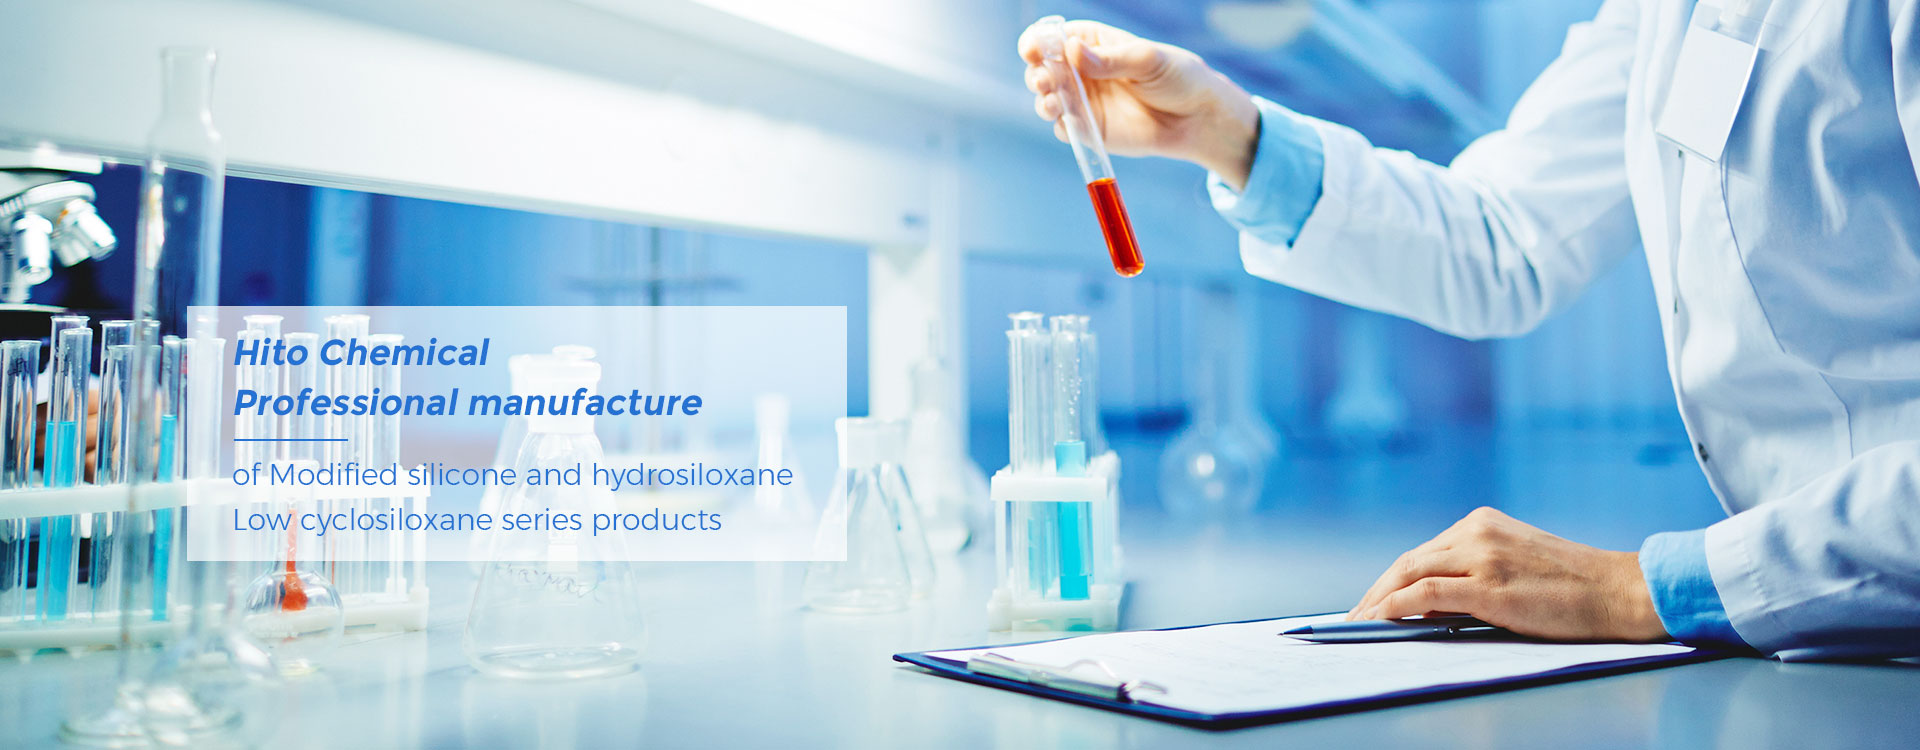 Hito Chemical Professional Manufactureof Modified Silicone and hydrosiloxane